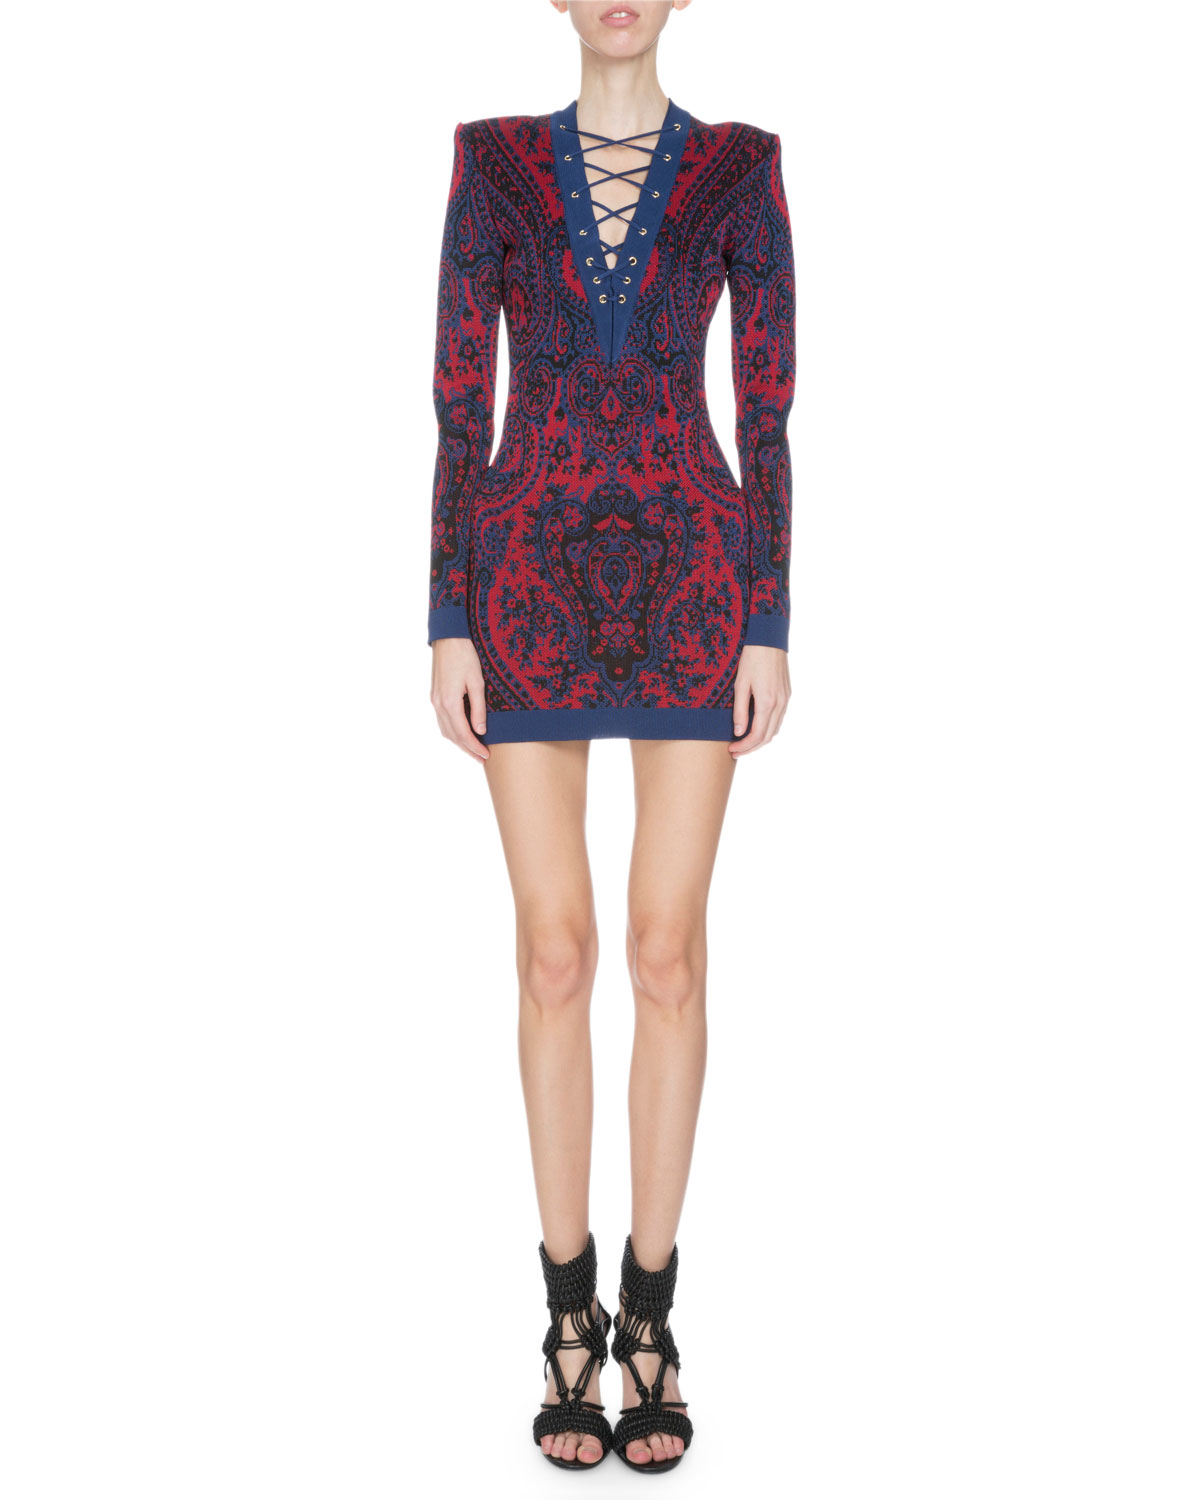 Long-Sleeve Paisley Lace-Up Dress, Red/Blue